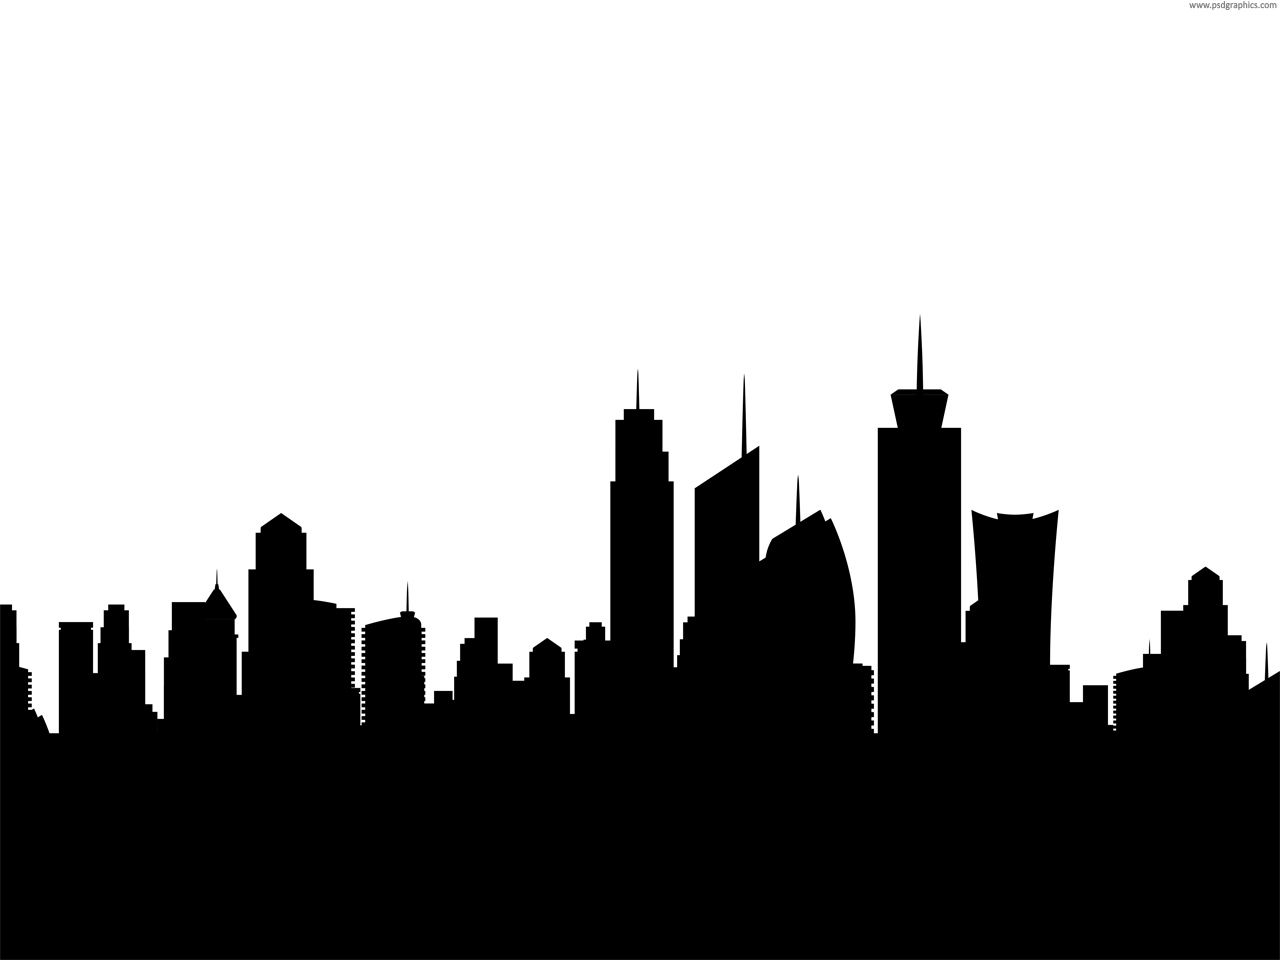 city skyline silhouette clip art at getdrawings com free for rh getdrawings com city skyline clip art free city skyline clip art free